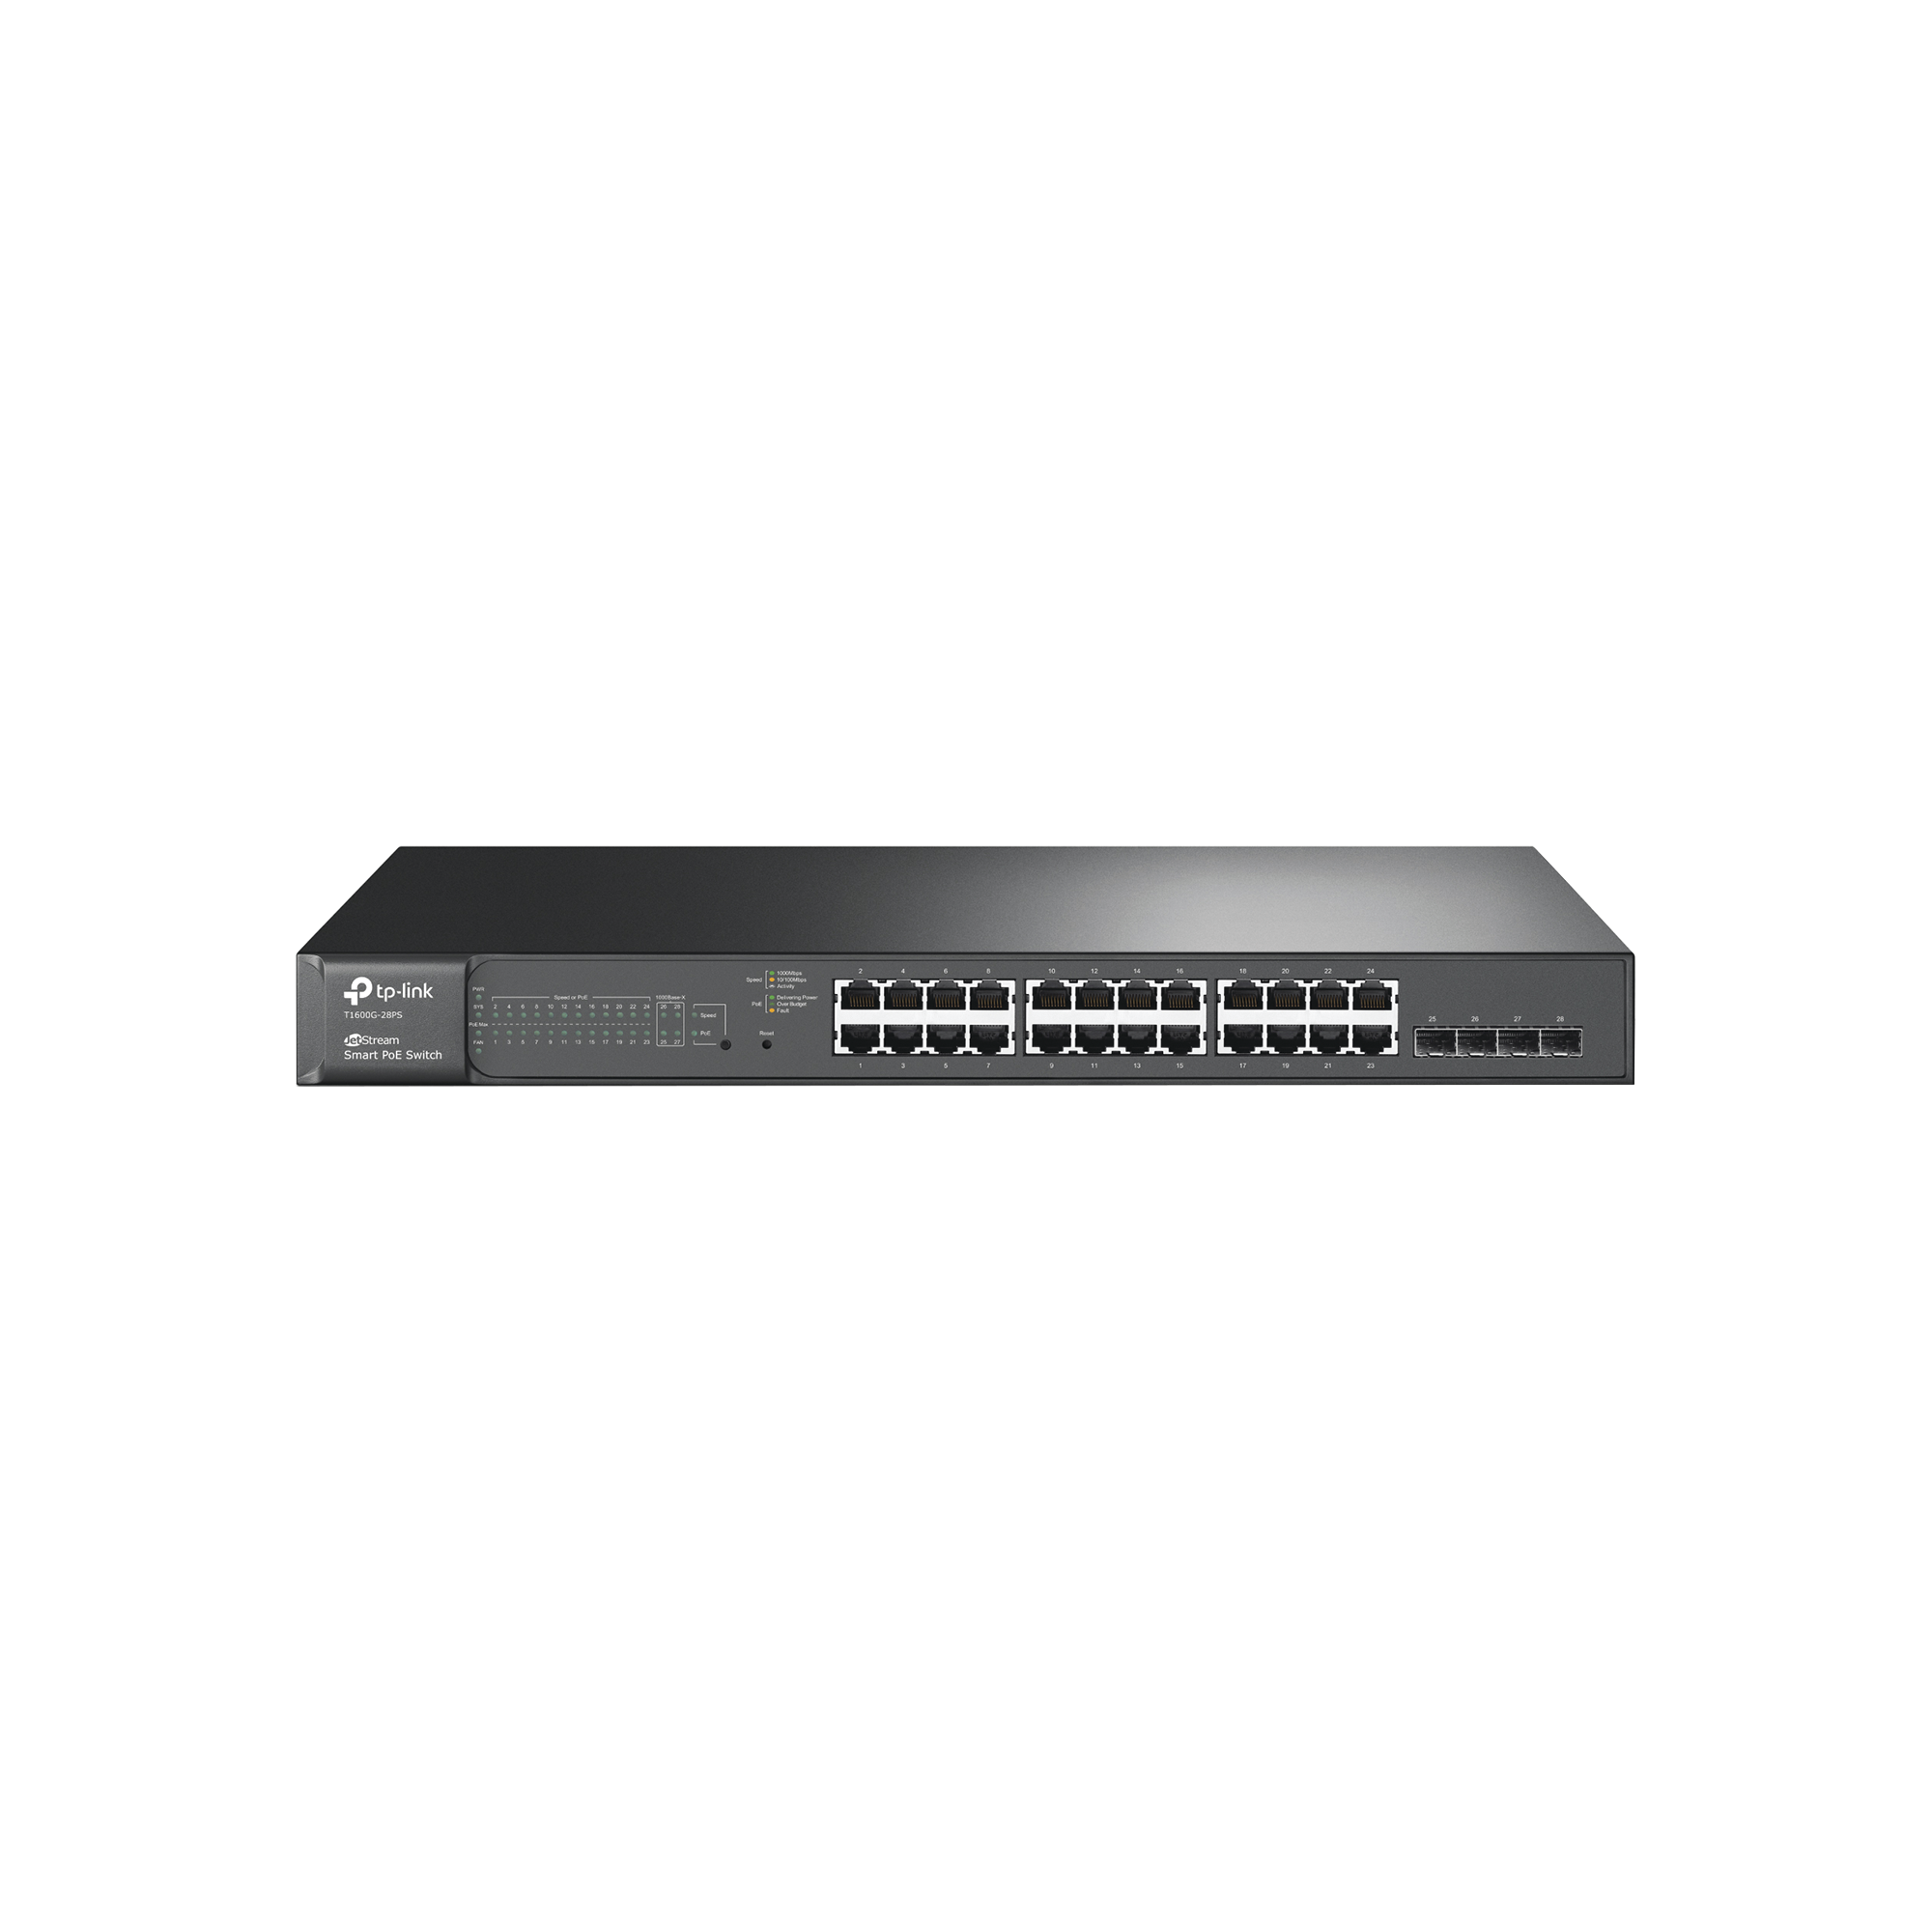 Smart Switch JetStream PoE+ administrable Capa 2, 24 puertos 10/100/1000 Mbps + 4 puertos SFP 192 W